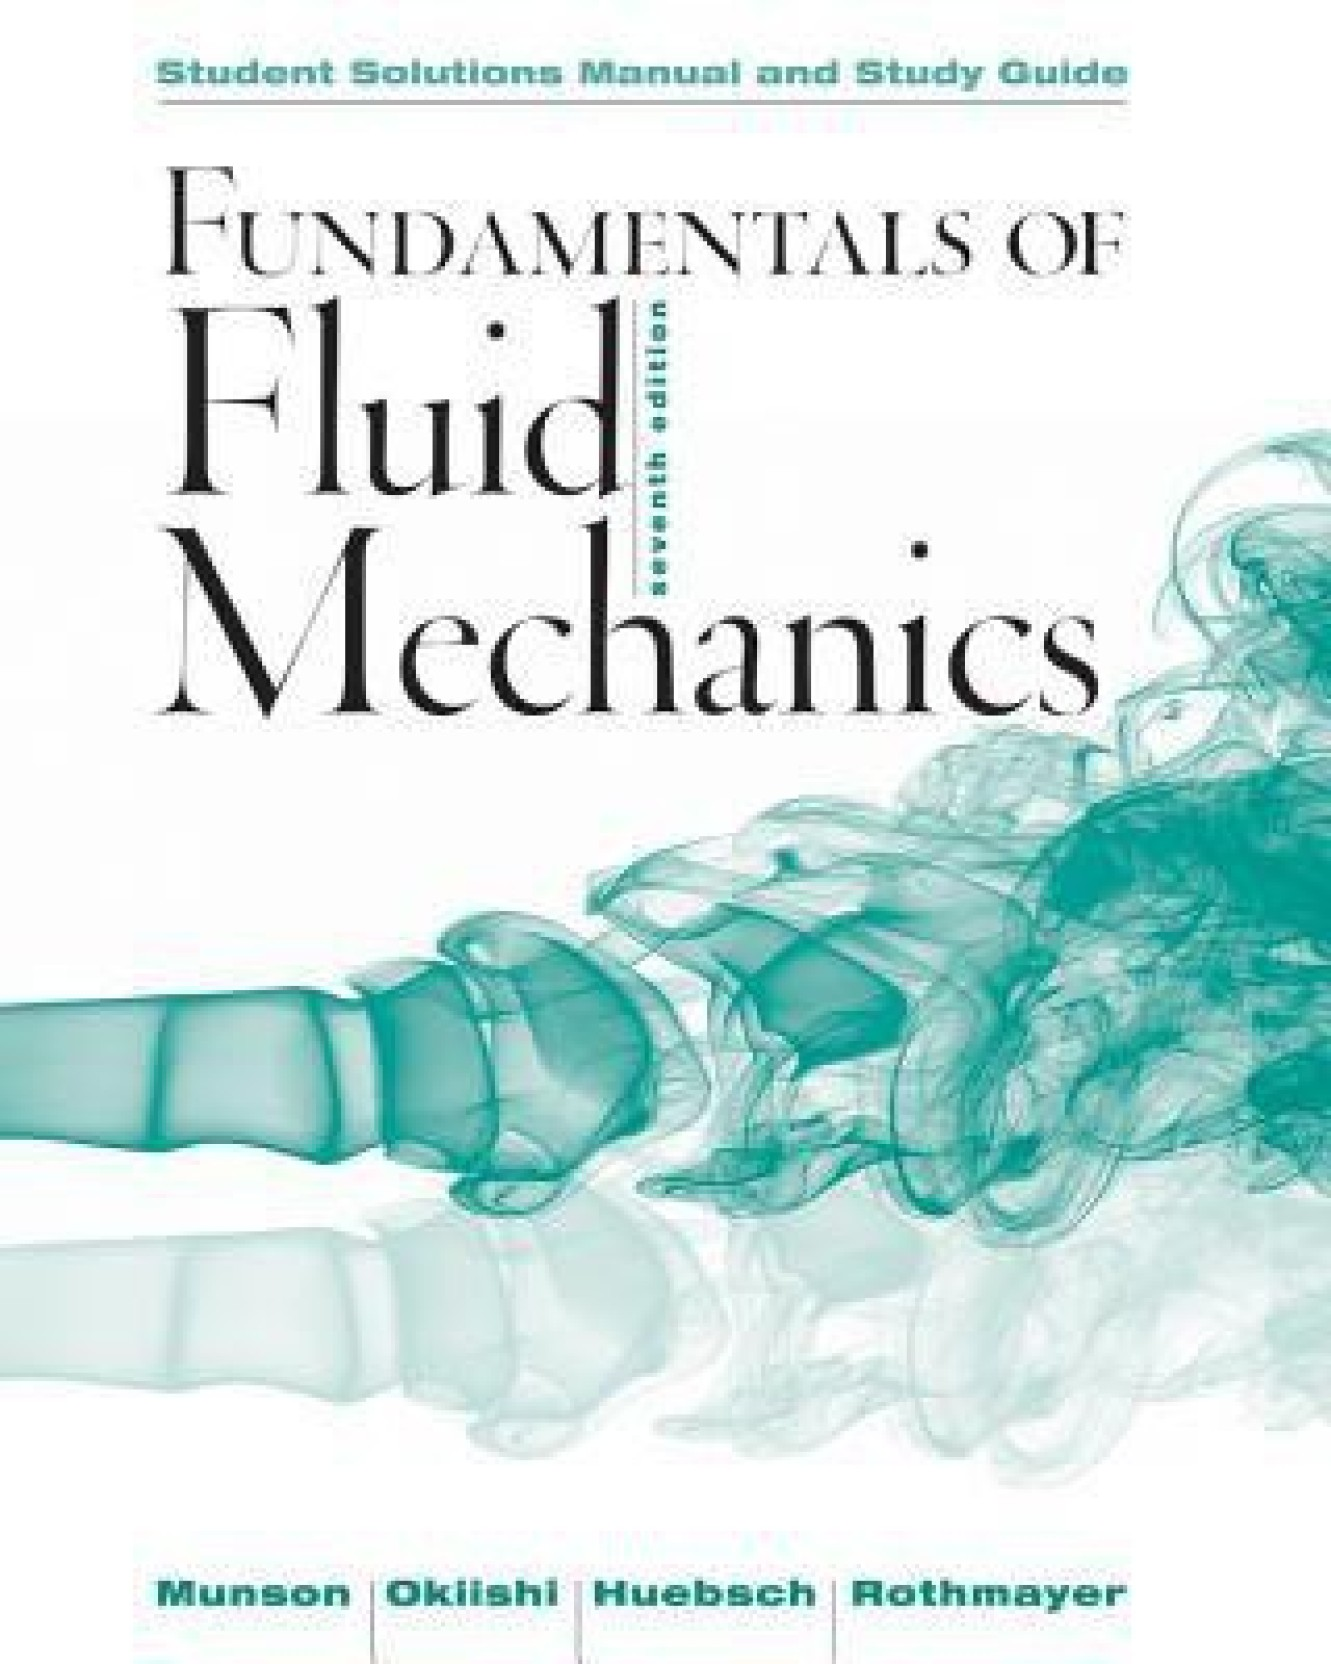 Fundamentals of Fluid Mechanics, Student Solutions Manual and Study Guide.  Share